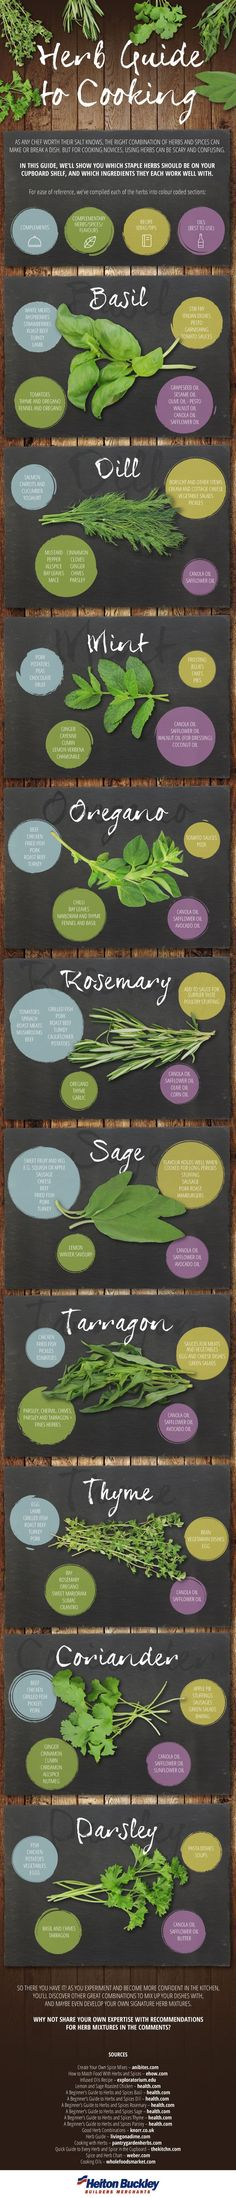 Herb Guide to Cooking! You've grown the herbs, but how will you use them. Visit this post to get this fantastic guide and more resources on properly planting and harvesting an herb garden!